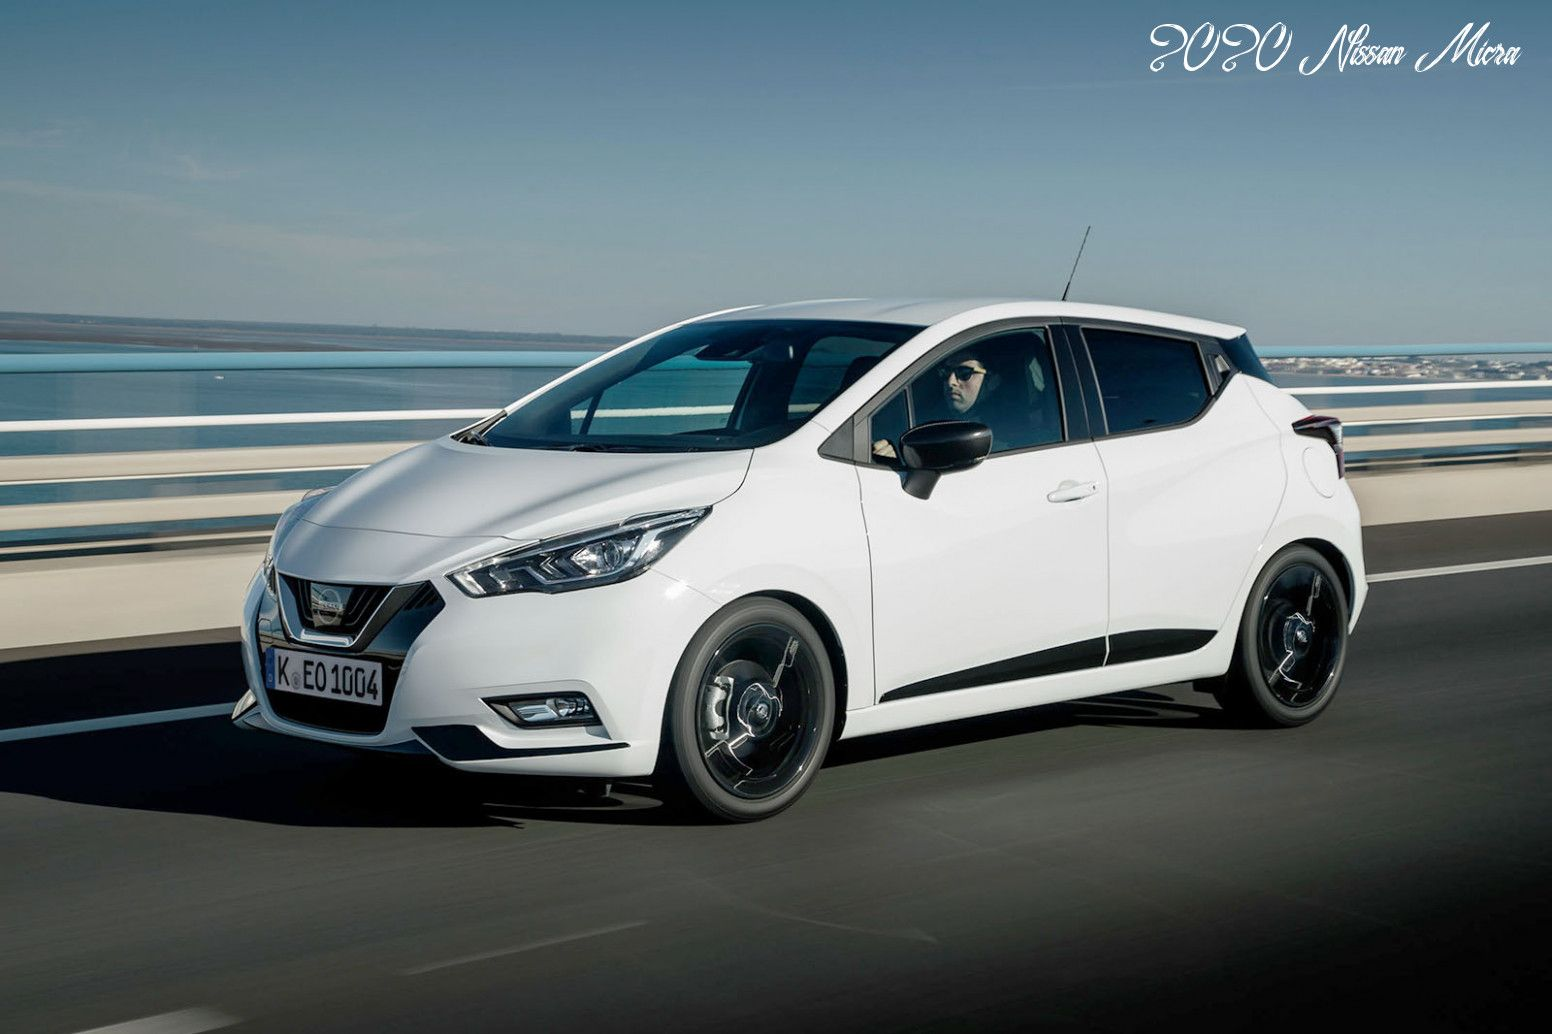 2020 Nissan Micra Picture In 2020 Nissan Sports Sport Cars